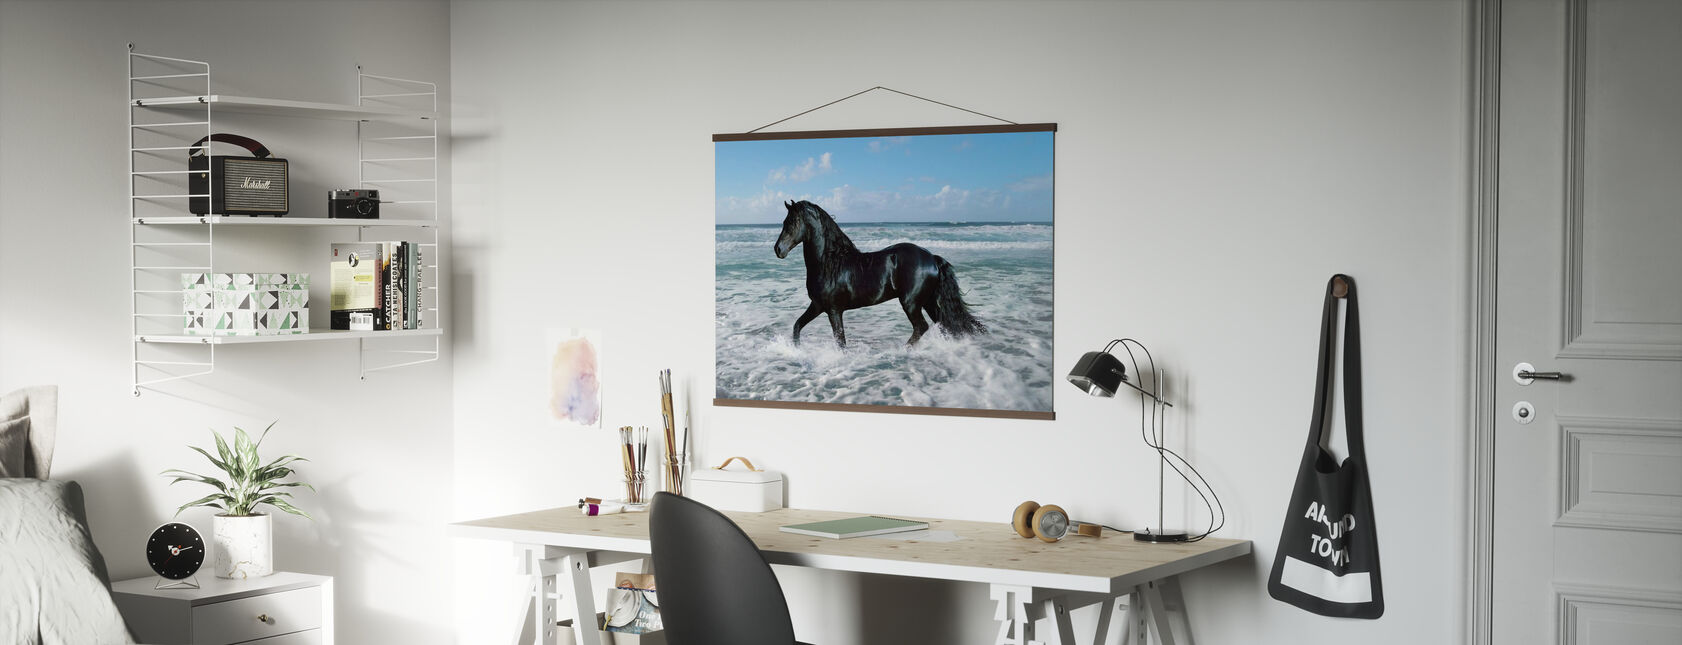 Horse Bathing - Poster - Office